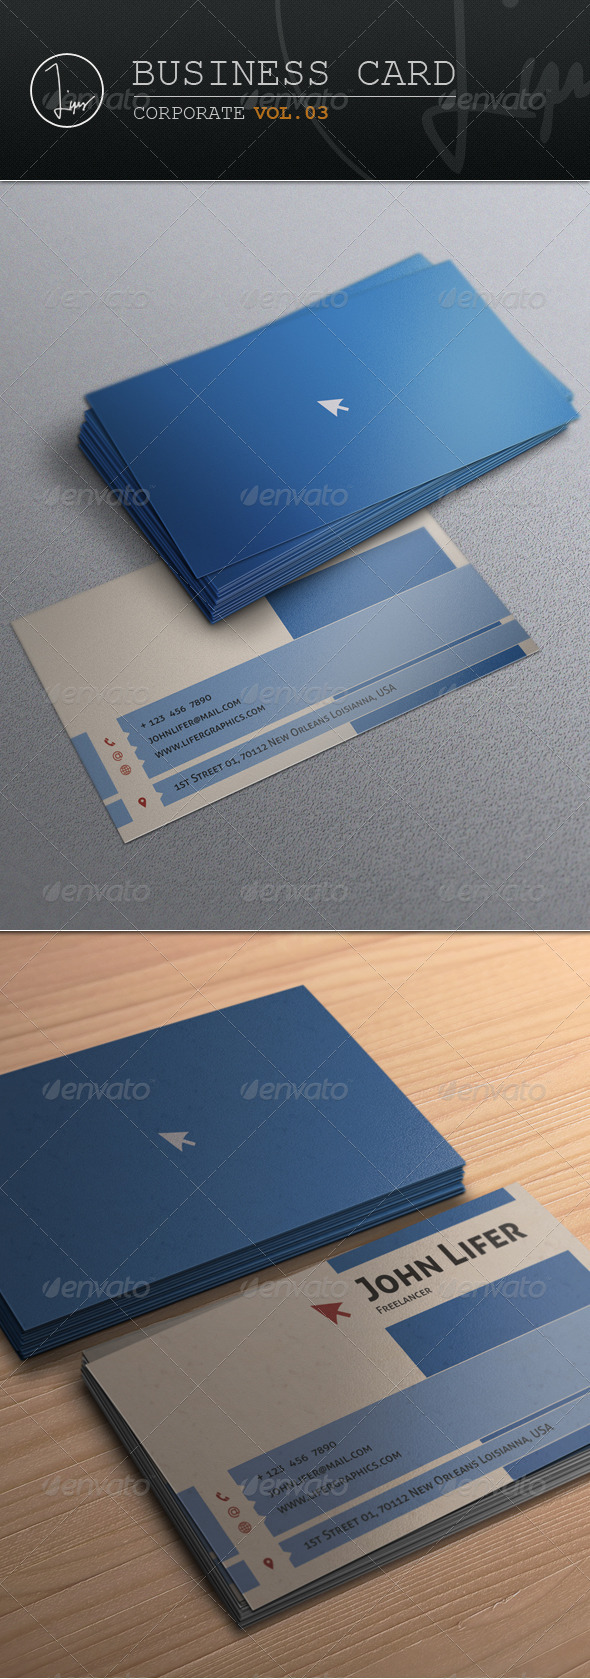 Business Card / Corporate Vol.03 - Corporate Business Cards